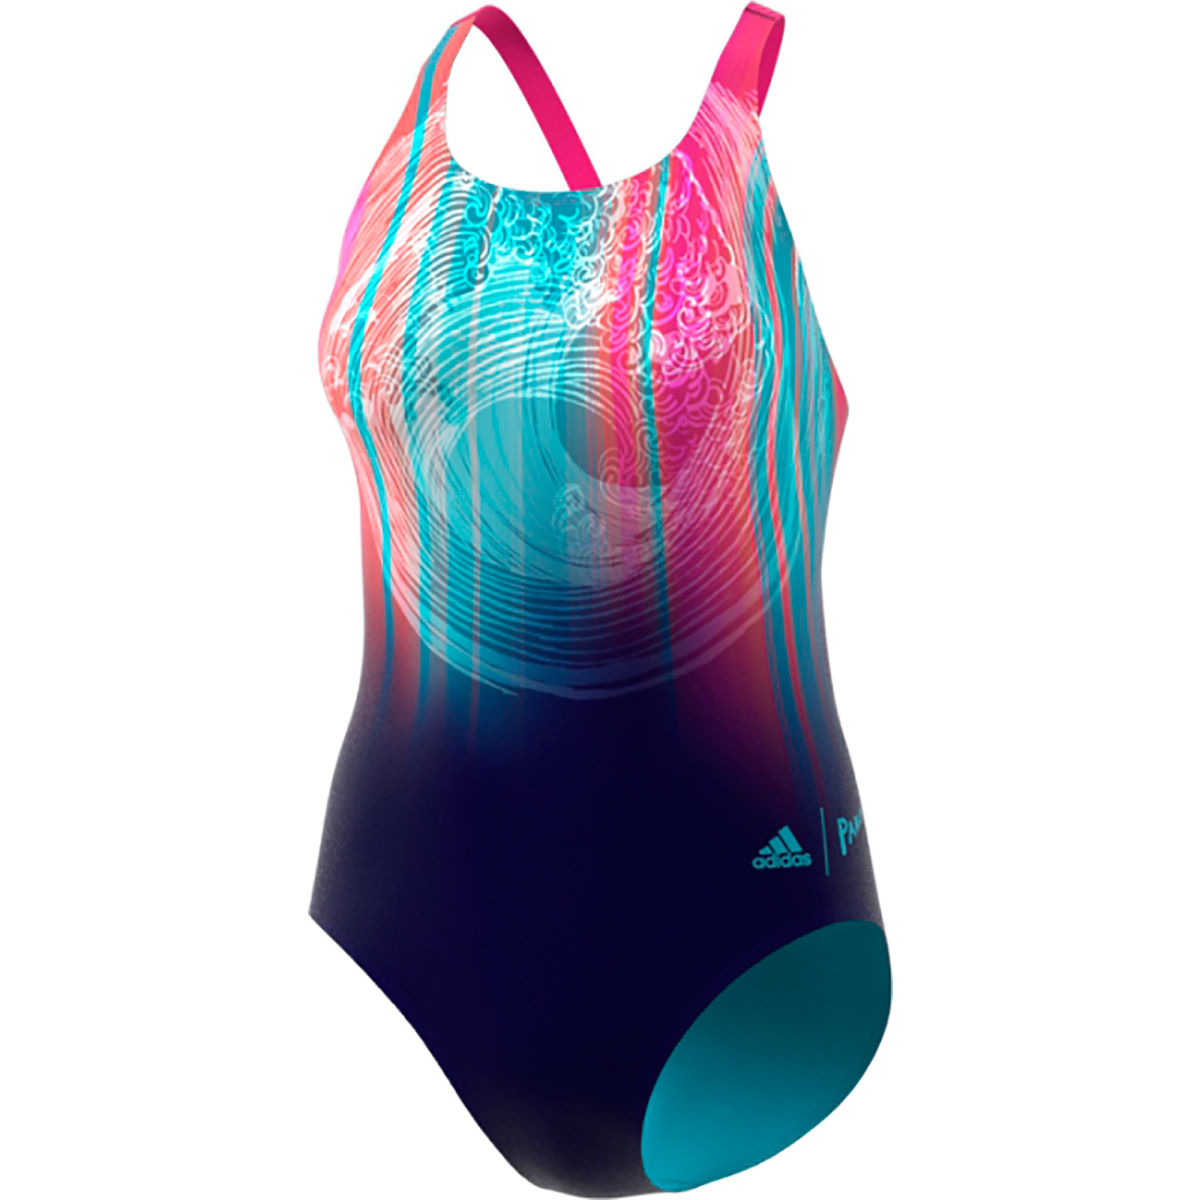 Maillot de bain Fille adidas Parley Placement Graphic - 26''